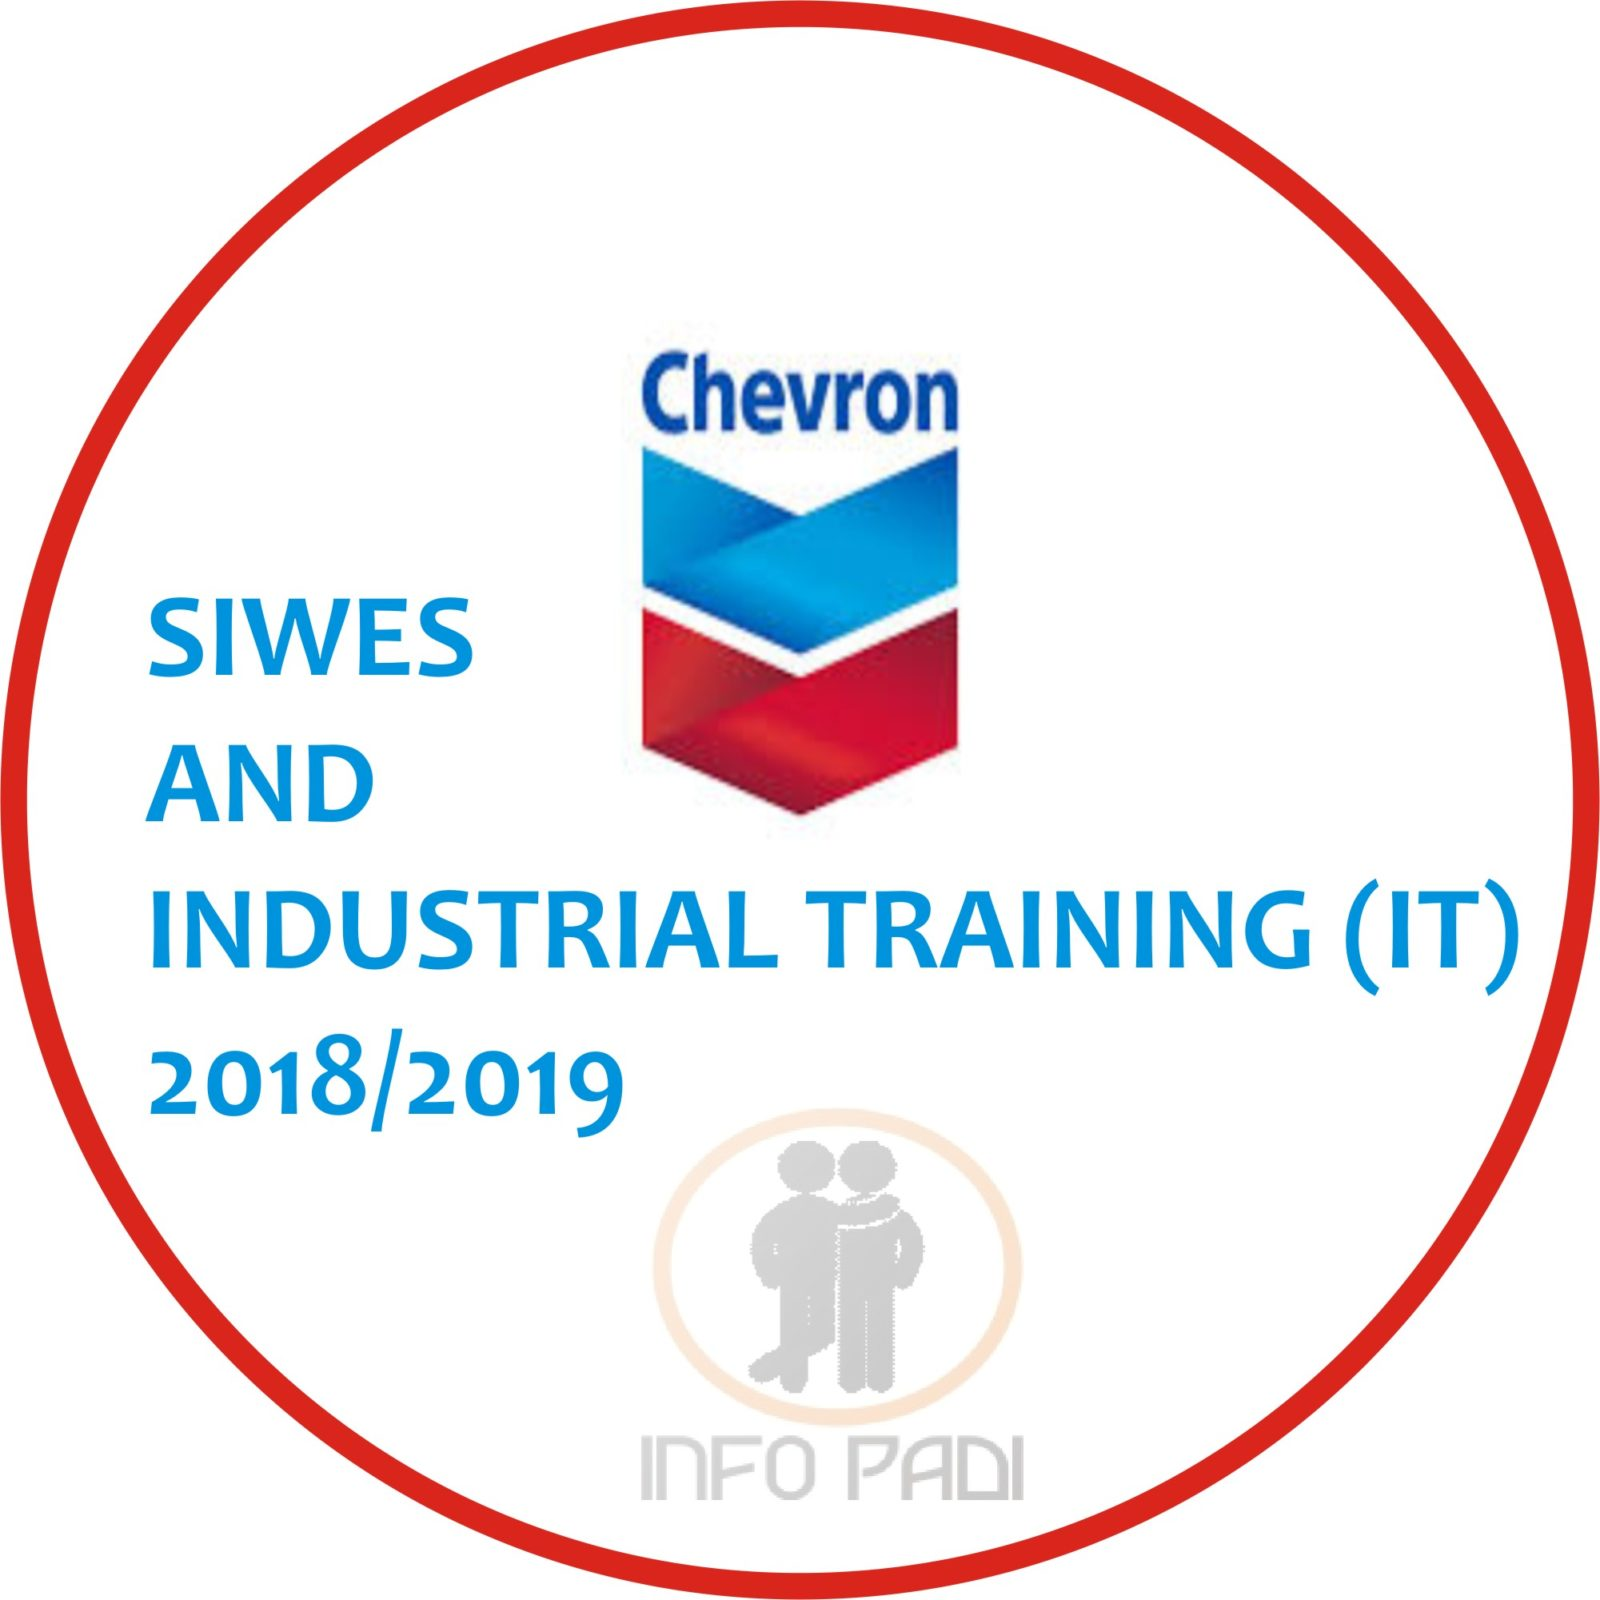 Chevron Nigeria Limited SIWES/Industrial Training (IT) 2018/2019 for Undergraduates – Application Guideline